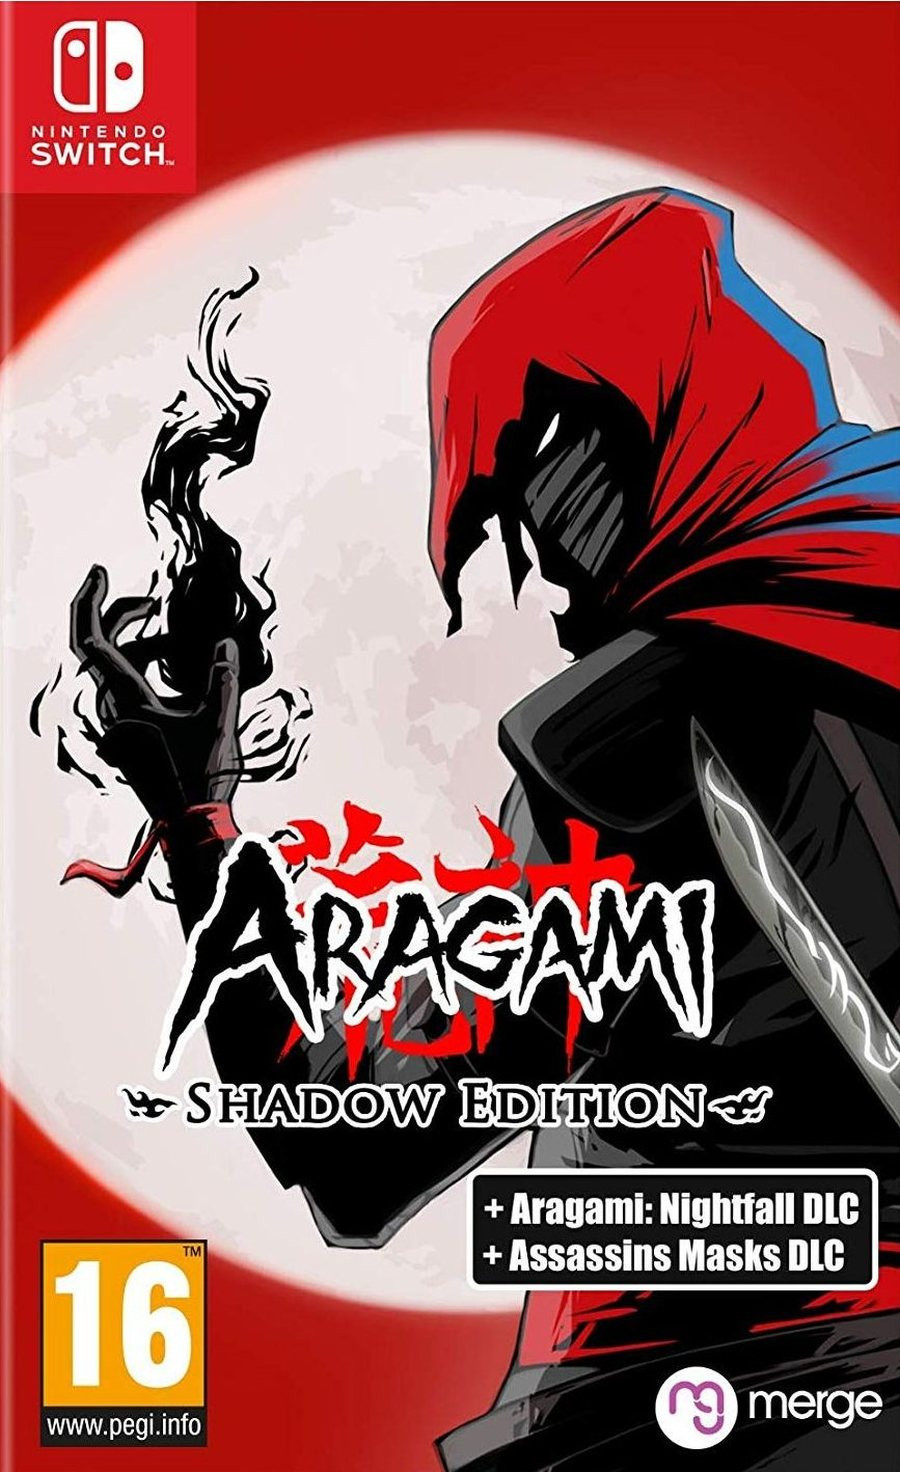 SWITCH Aragami - Shadow Edition